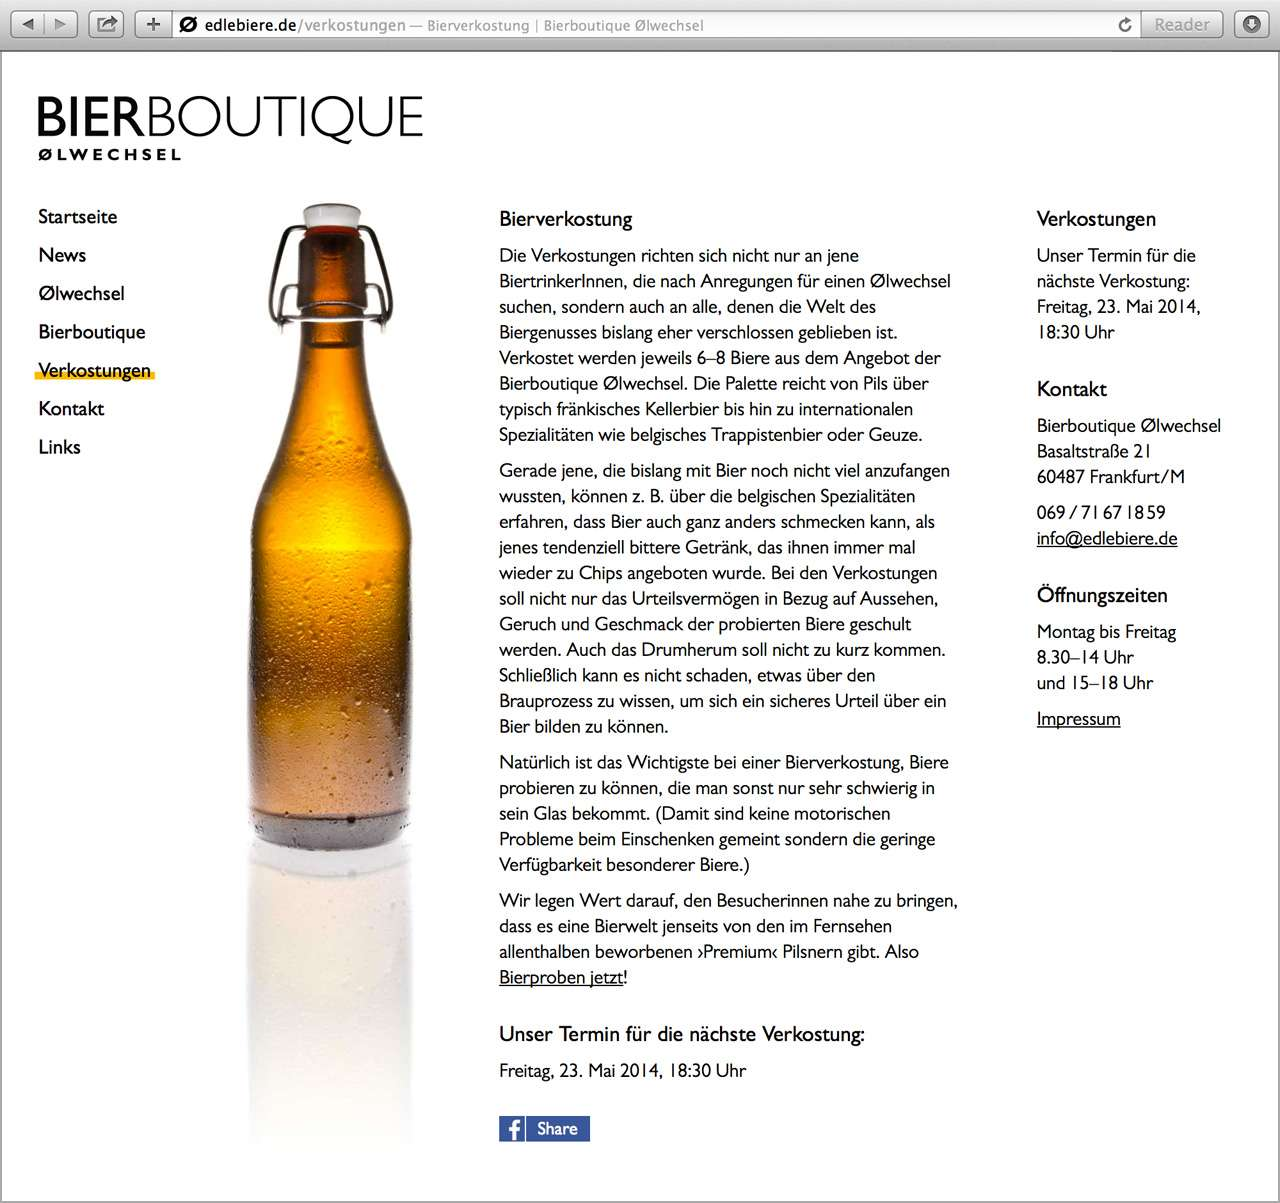 Screenshot der Website der Bierboutique Ølwechsel